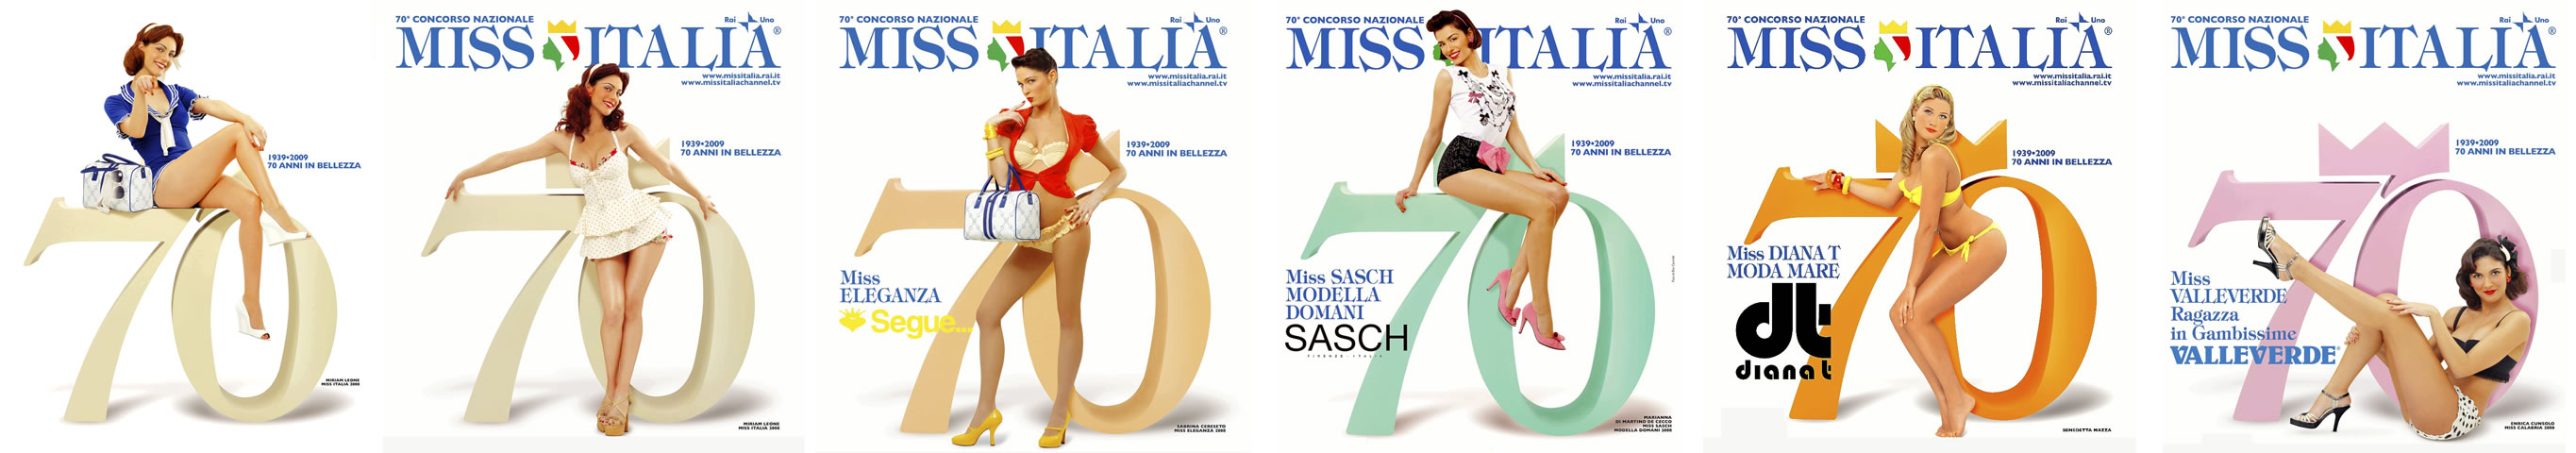 Advertising Campaign posters Miss Italy 70th anniversary